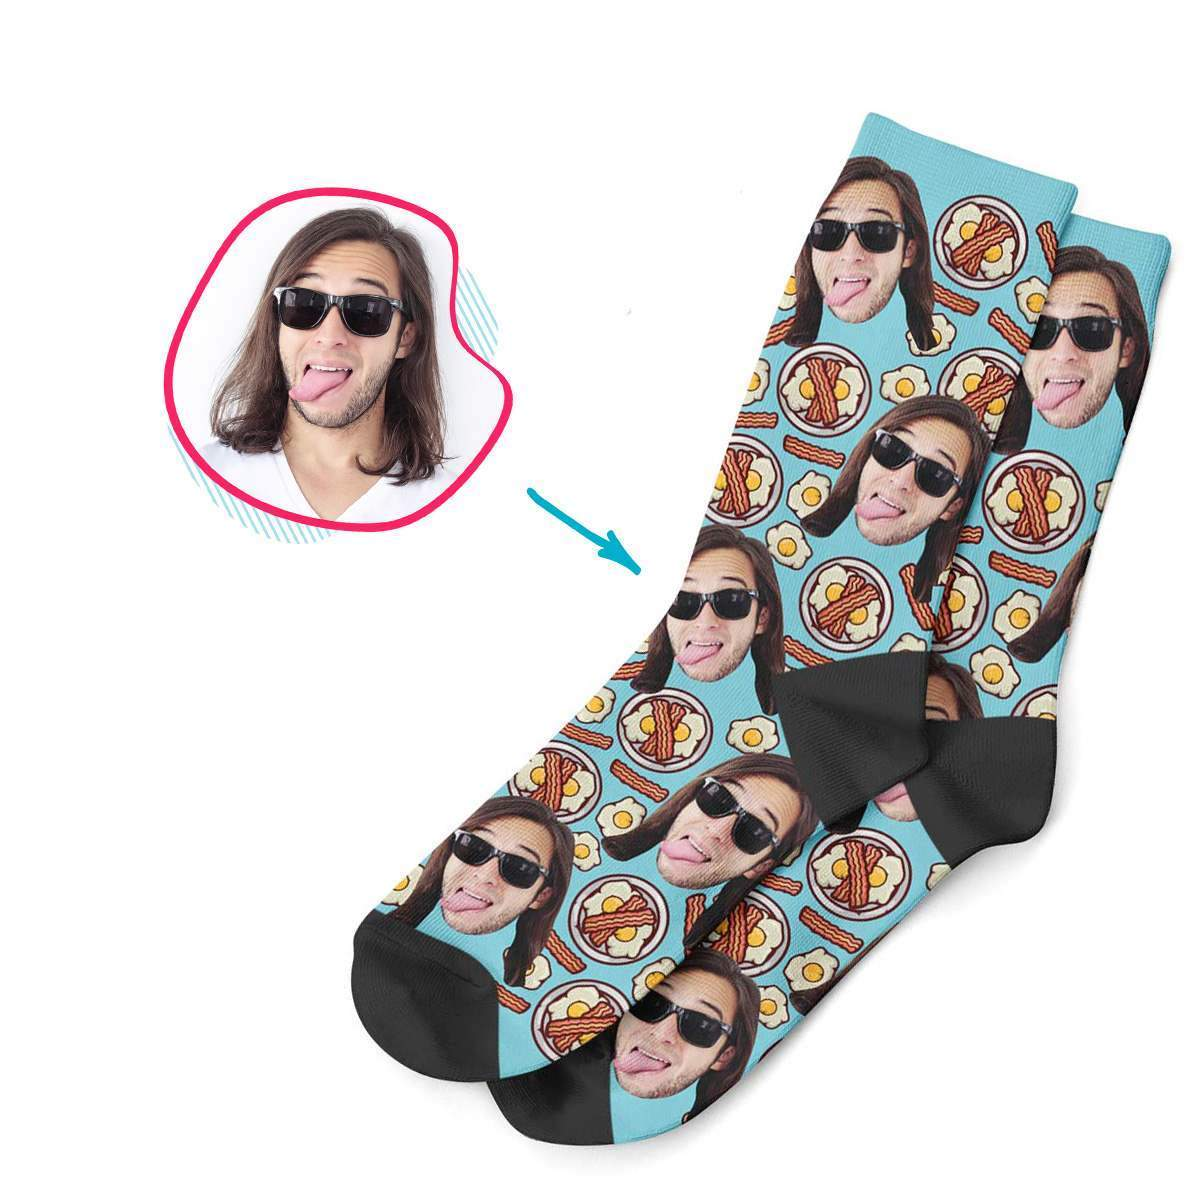 Bacon and Eggs Personalized Socks